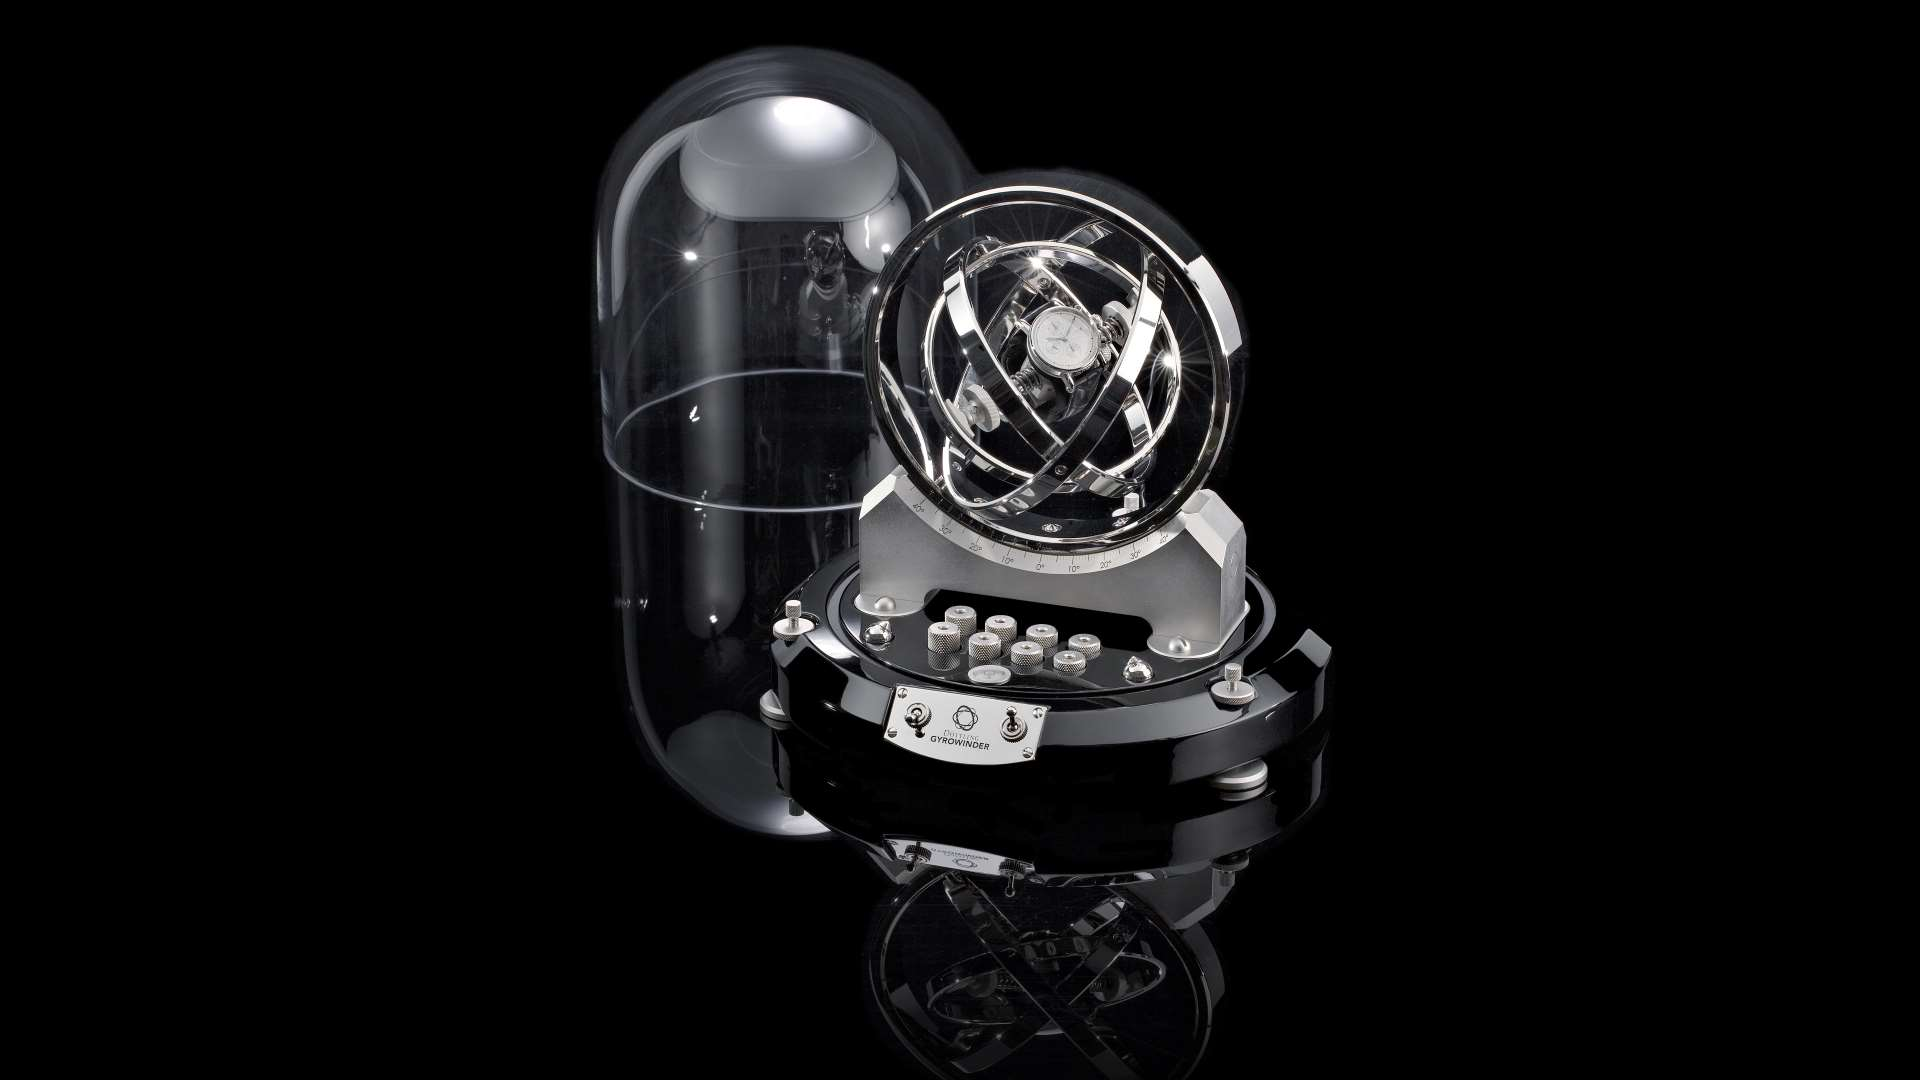 safes by dottling features a watch winder with a black background